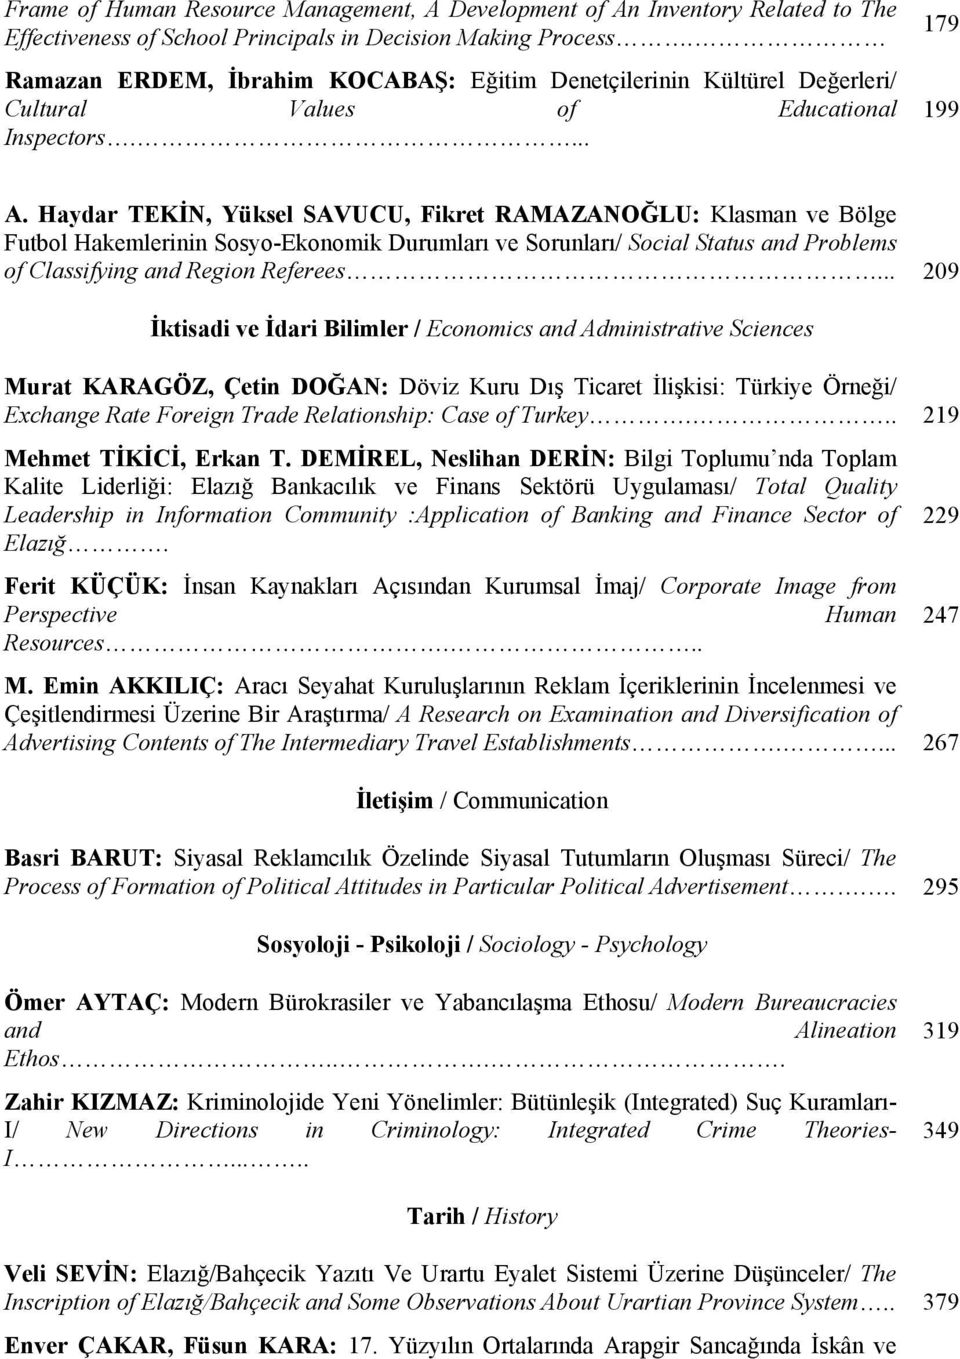 Haydar TEKİN, Yüksel SAVUCU, Fikret RAMAZANOĞLU: Klasman ve Bölge Futbol Hakemlerinin Sosyo-Ekonomik Durumları ve Sorunları/ Social Status and Problems of Classifying and Region Referees.